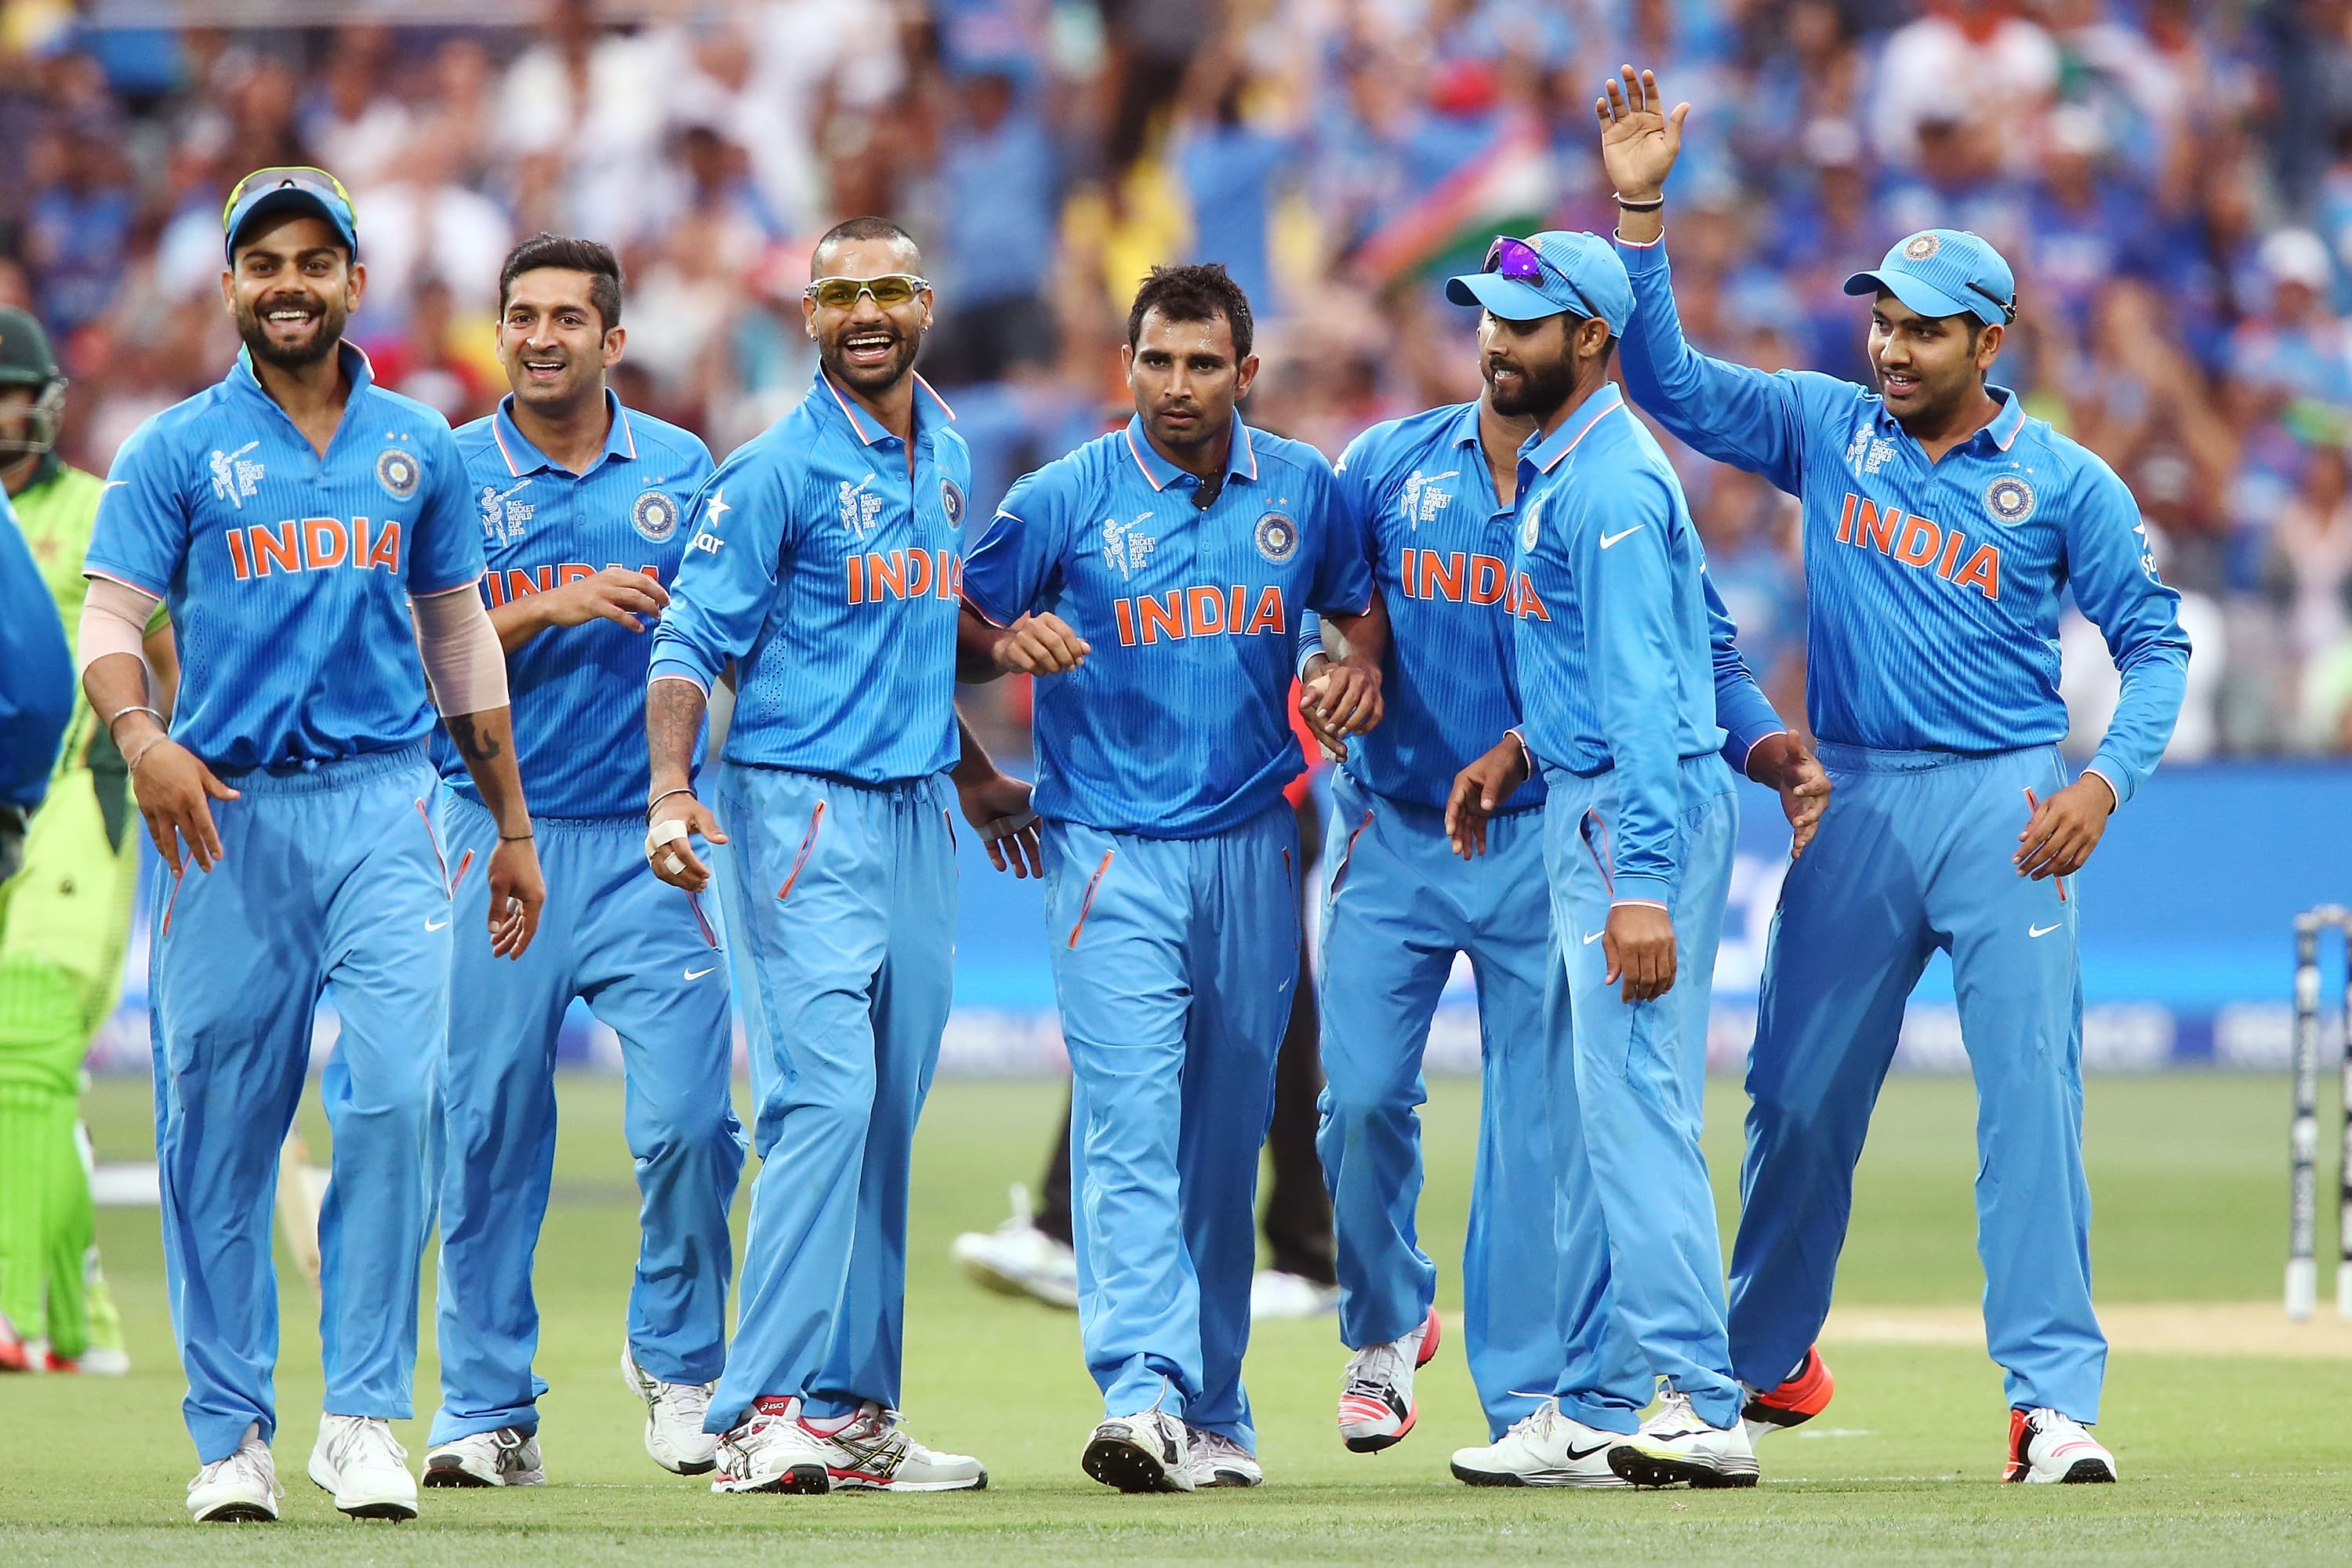 Indian Cricket Team: ICC Cricket World Cup 2015: India Make The Long Travel